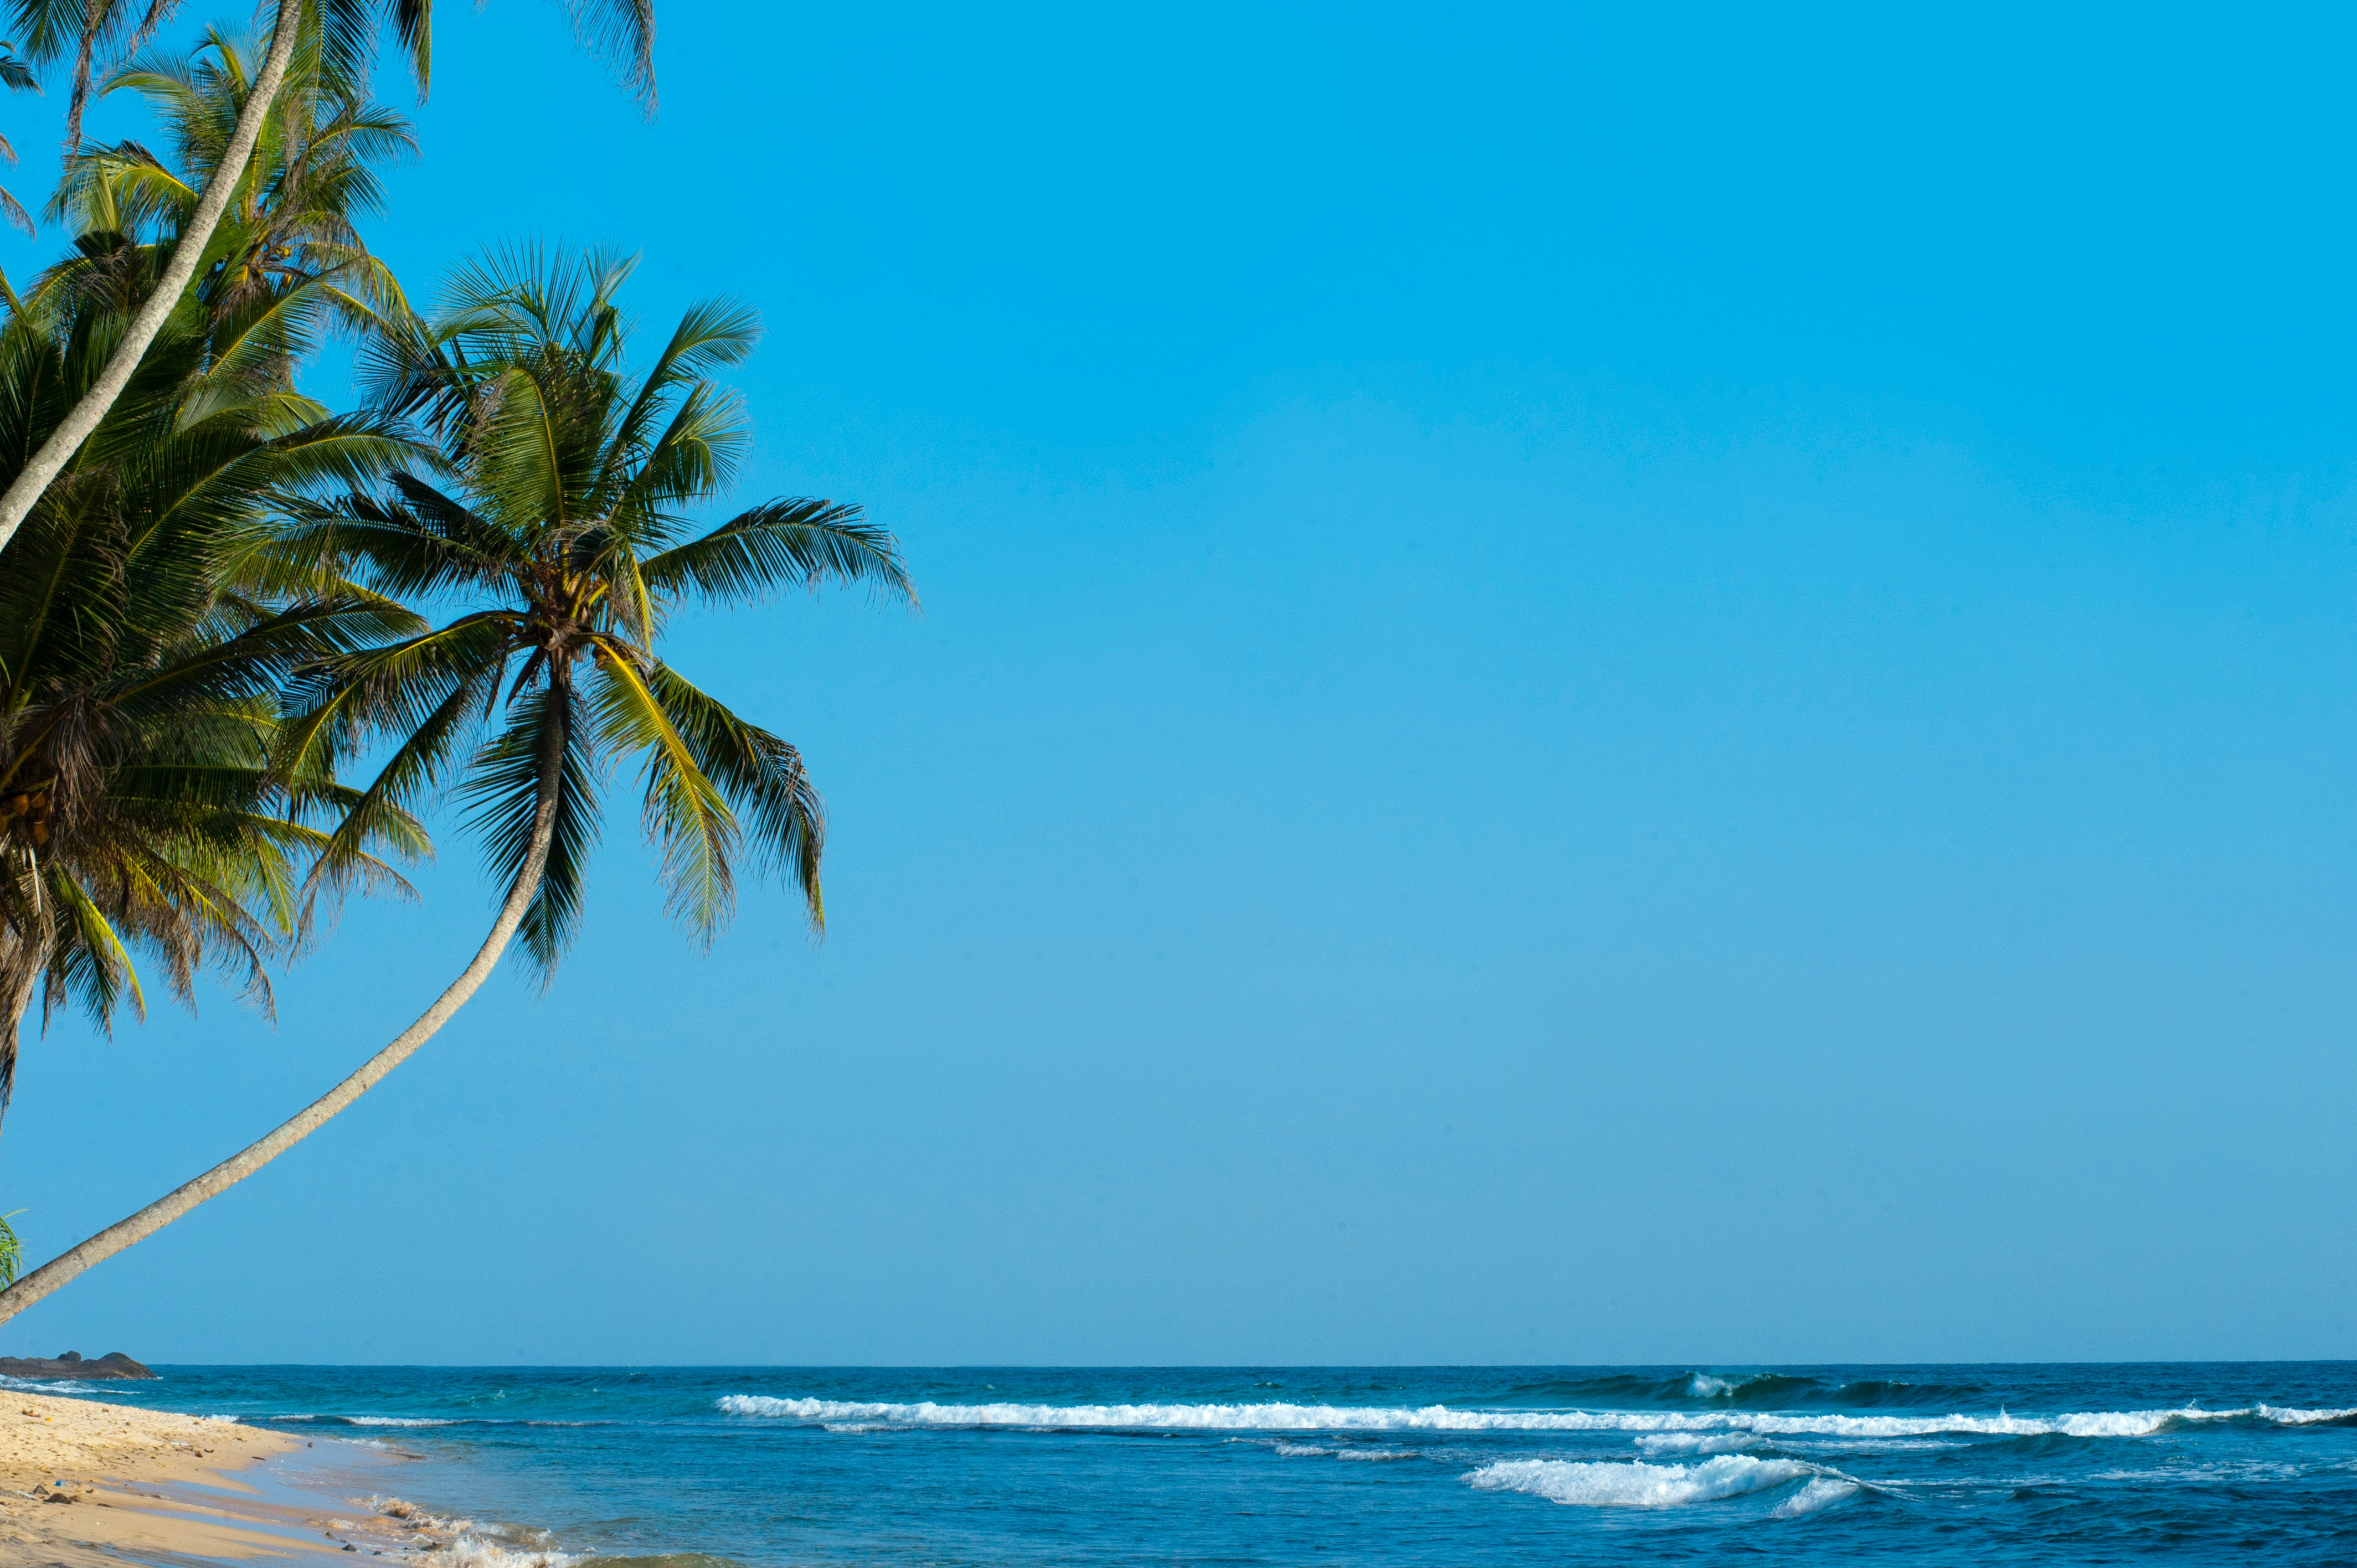 133629 download wallpaper Nature, Palm, Beach, Tropics, Shore, Bank, Surf, Ocean, Sea, Palms screensavers and pictures for free